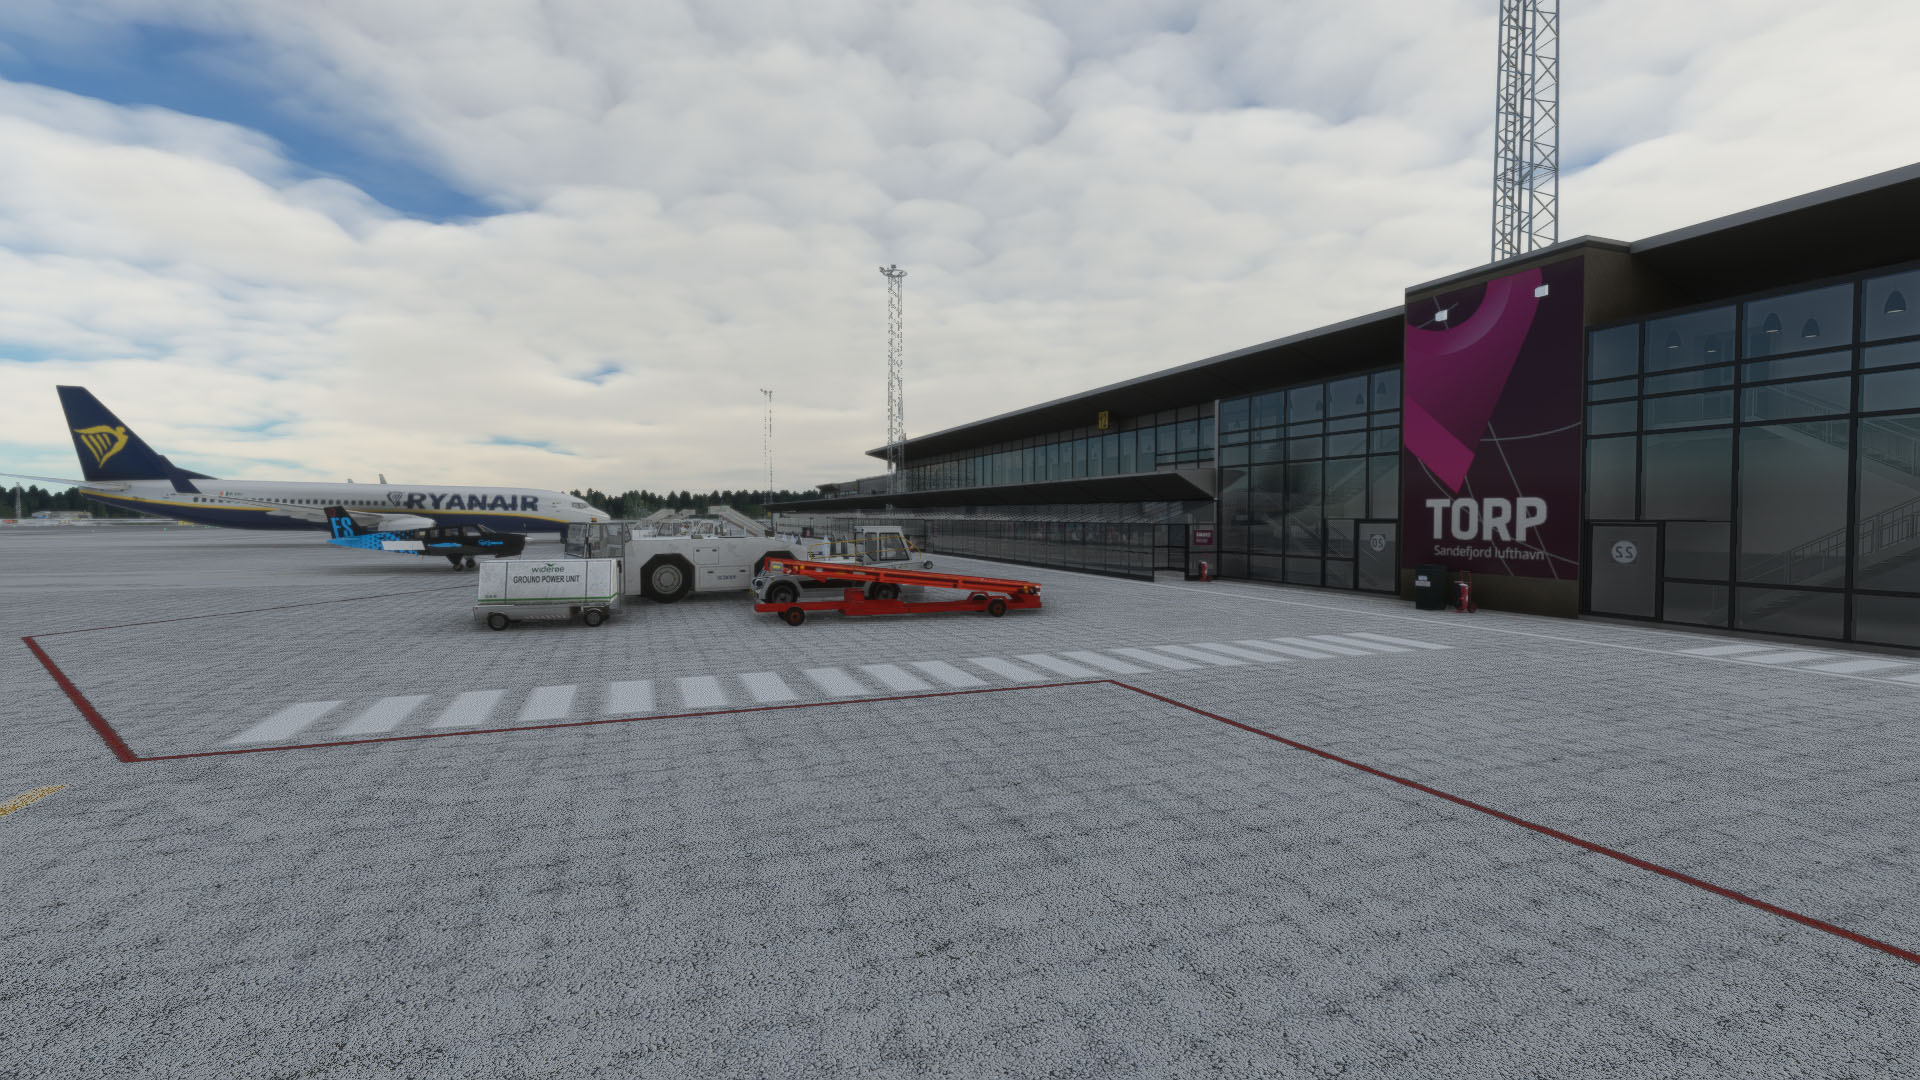 ORBX ENTO Sandefjord Airport para MSFS